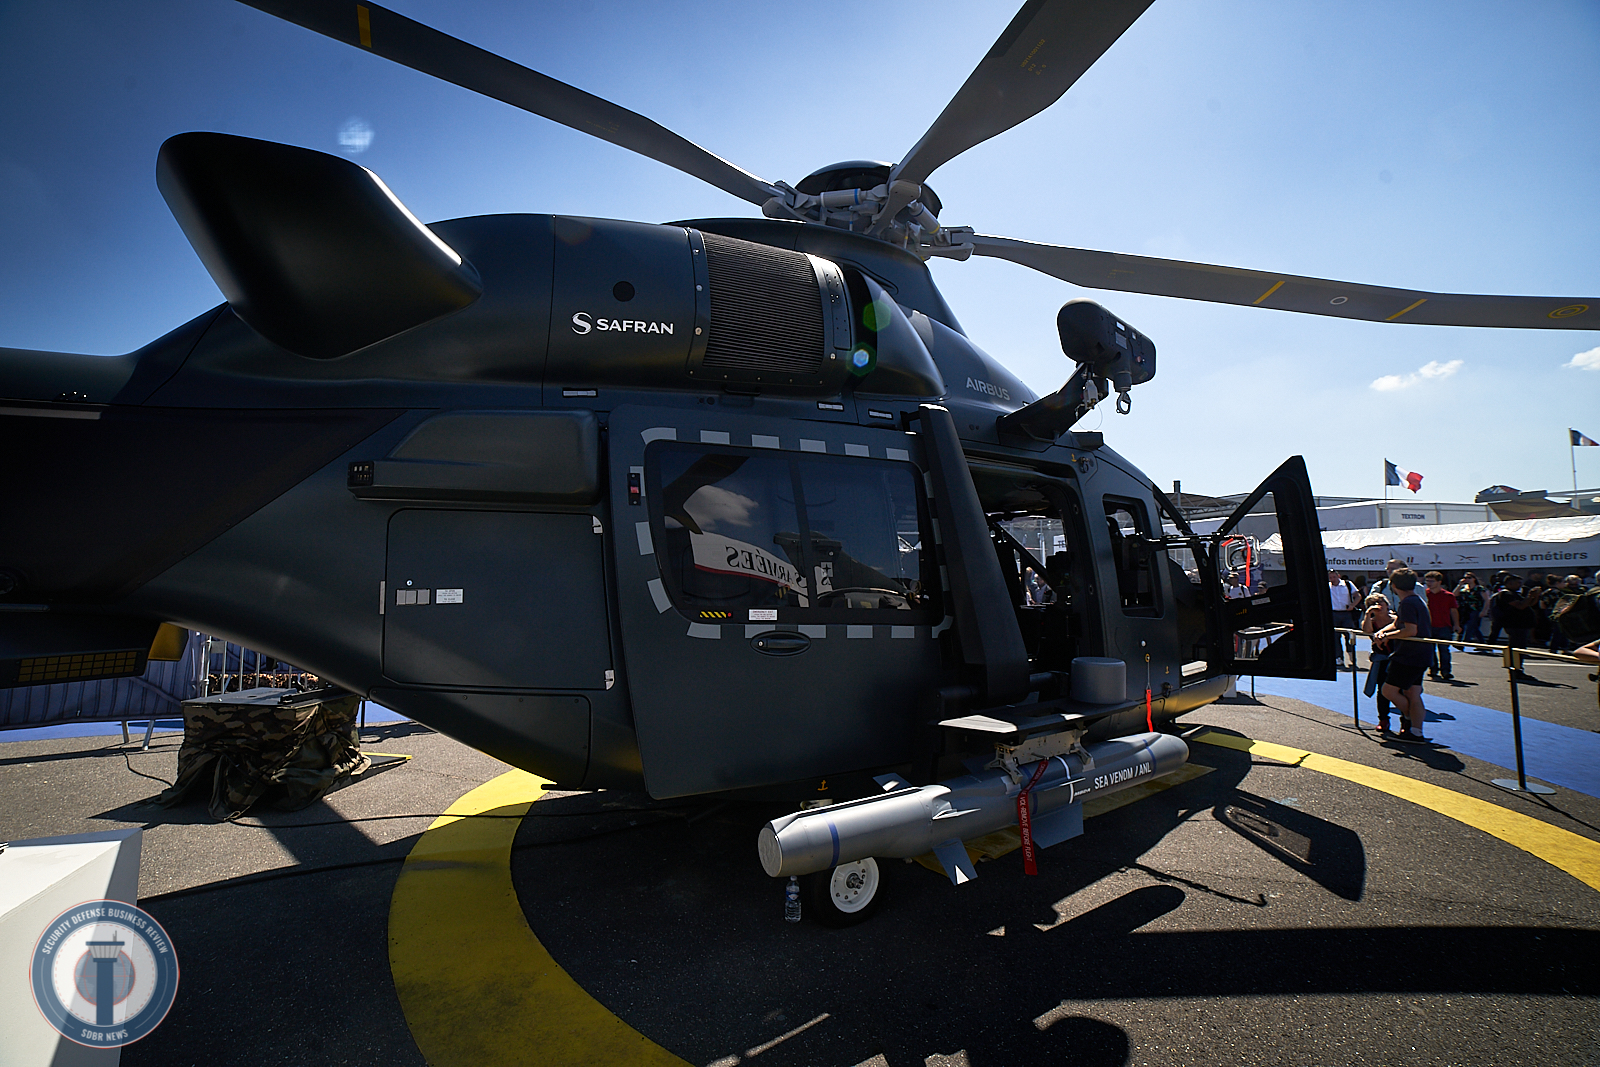 Attack helicopter H160M by Airbus and Safran